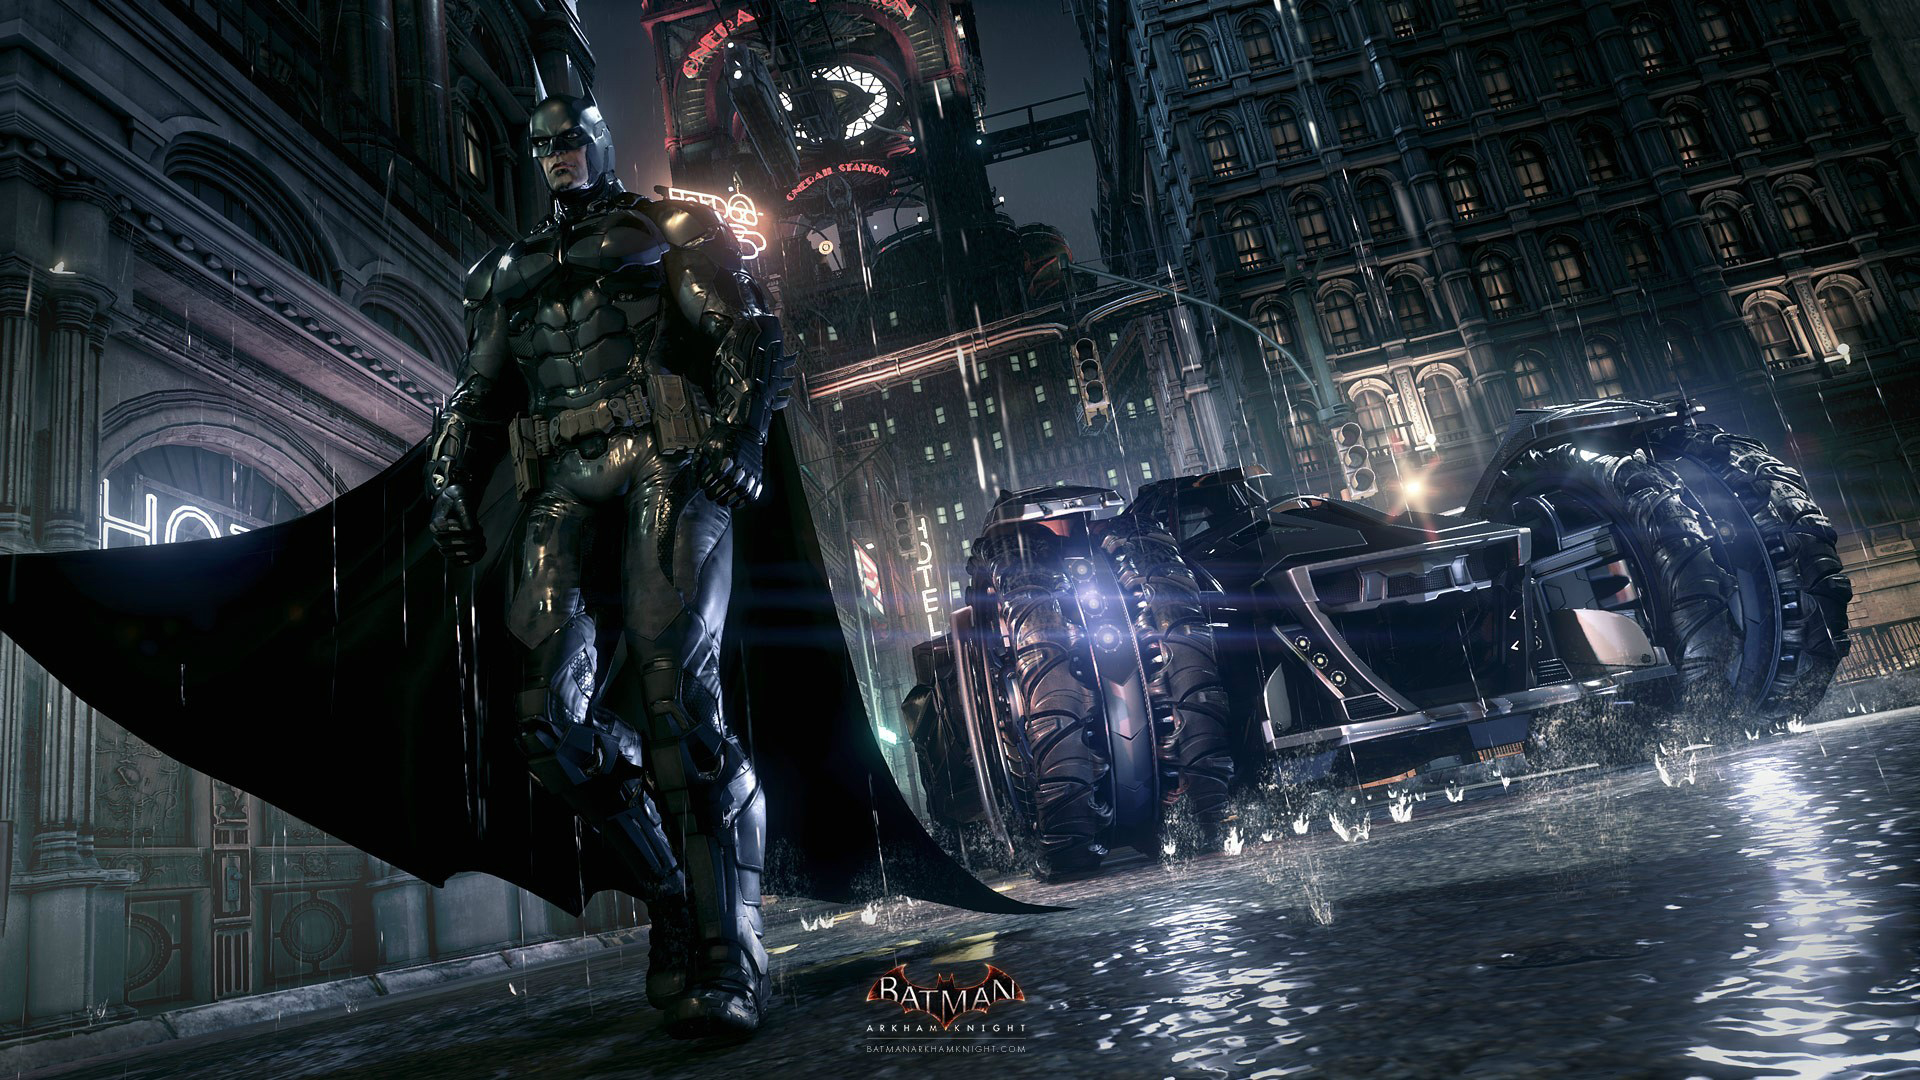 batman batmobile arkham knight 2o wallpaper hd